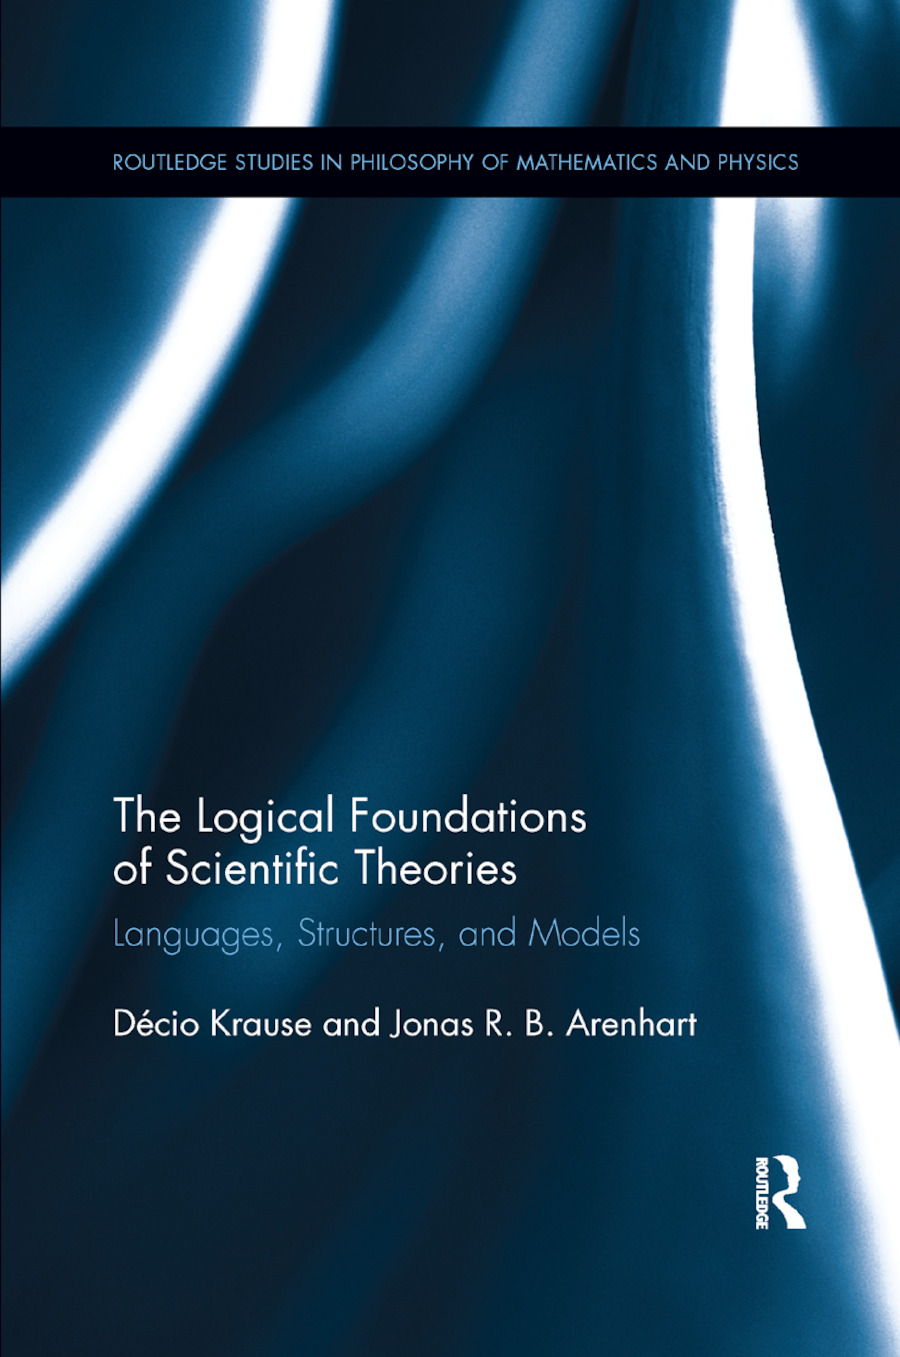 The Logical Foundations of Scientific Theories: Languages, Structures, and Models book cover